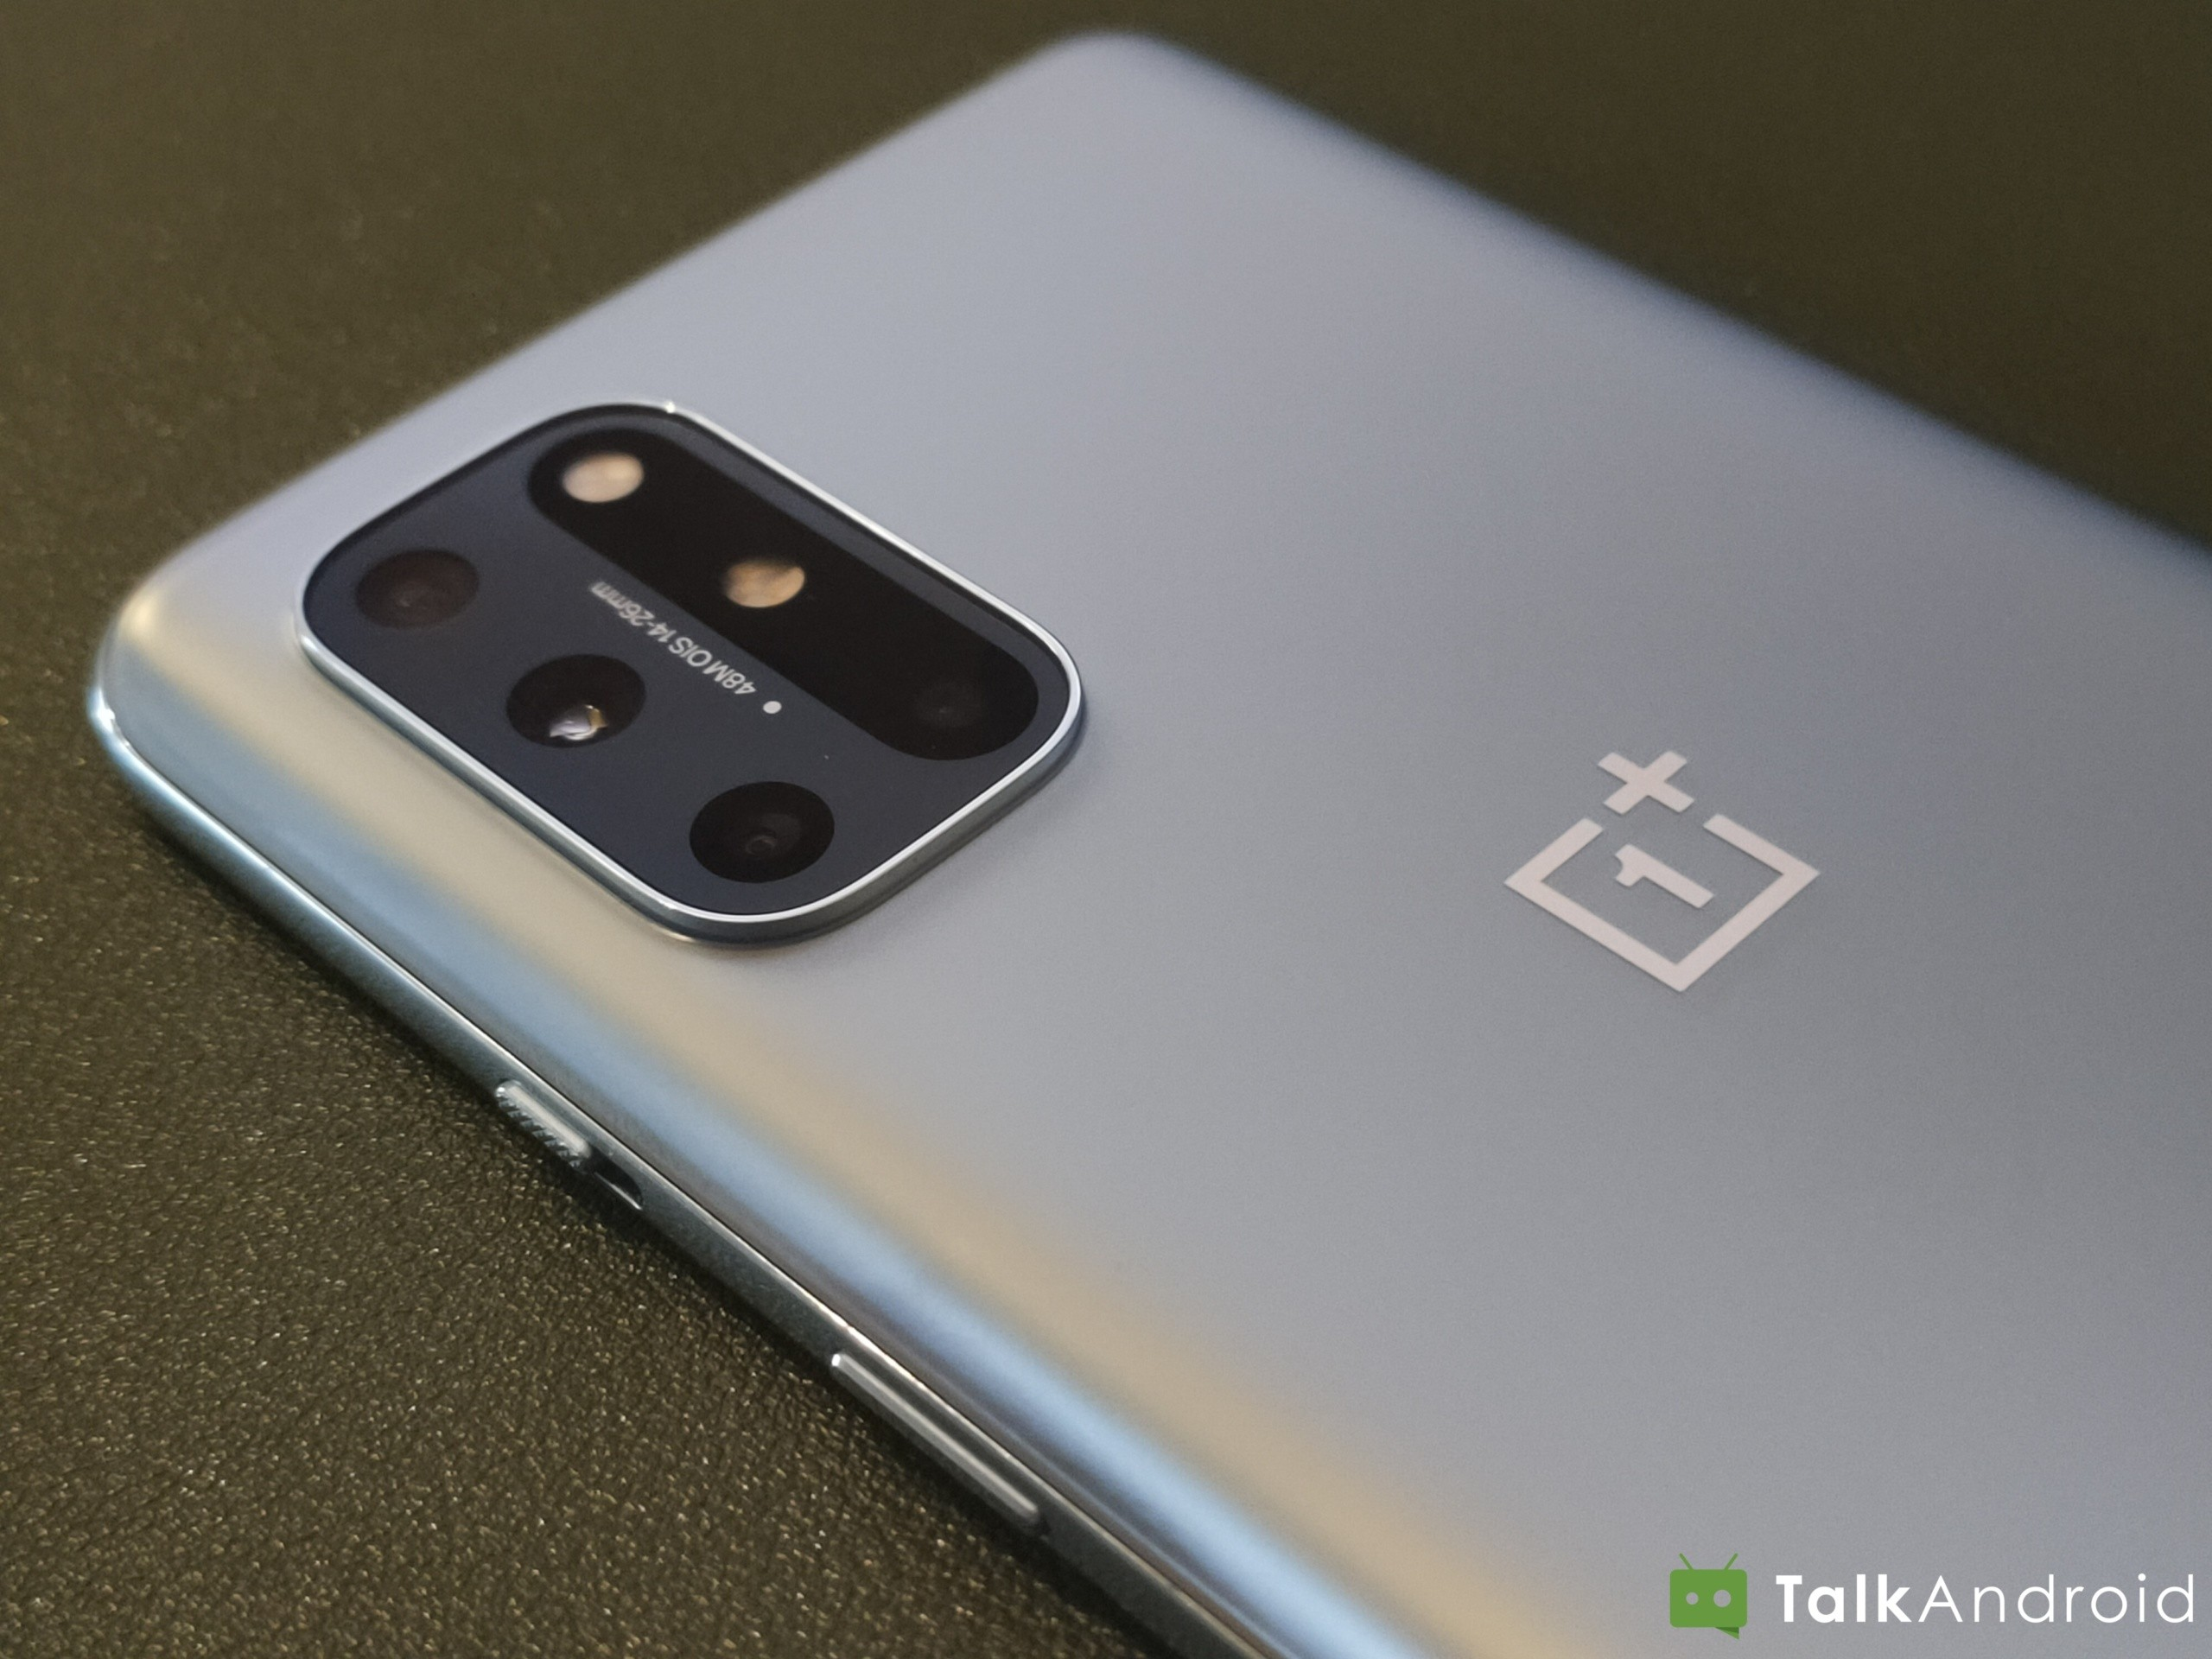 OnePlus has seen a 388% increase in sales in Q1 2021 - TalkAndroid.com